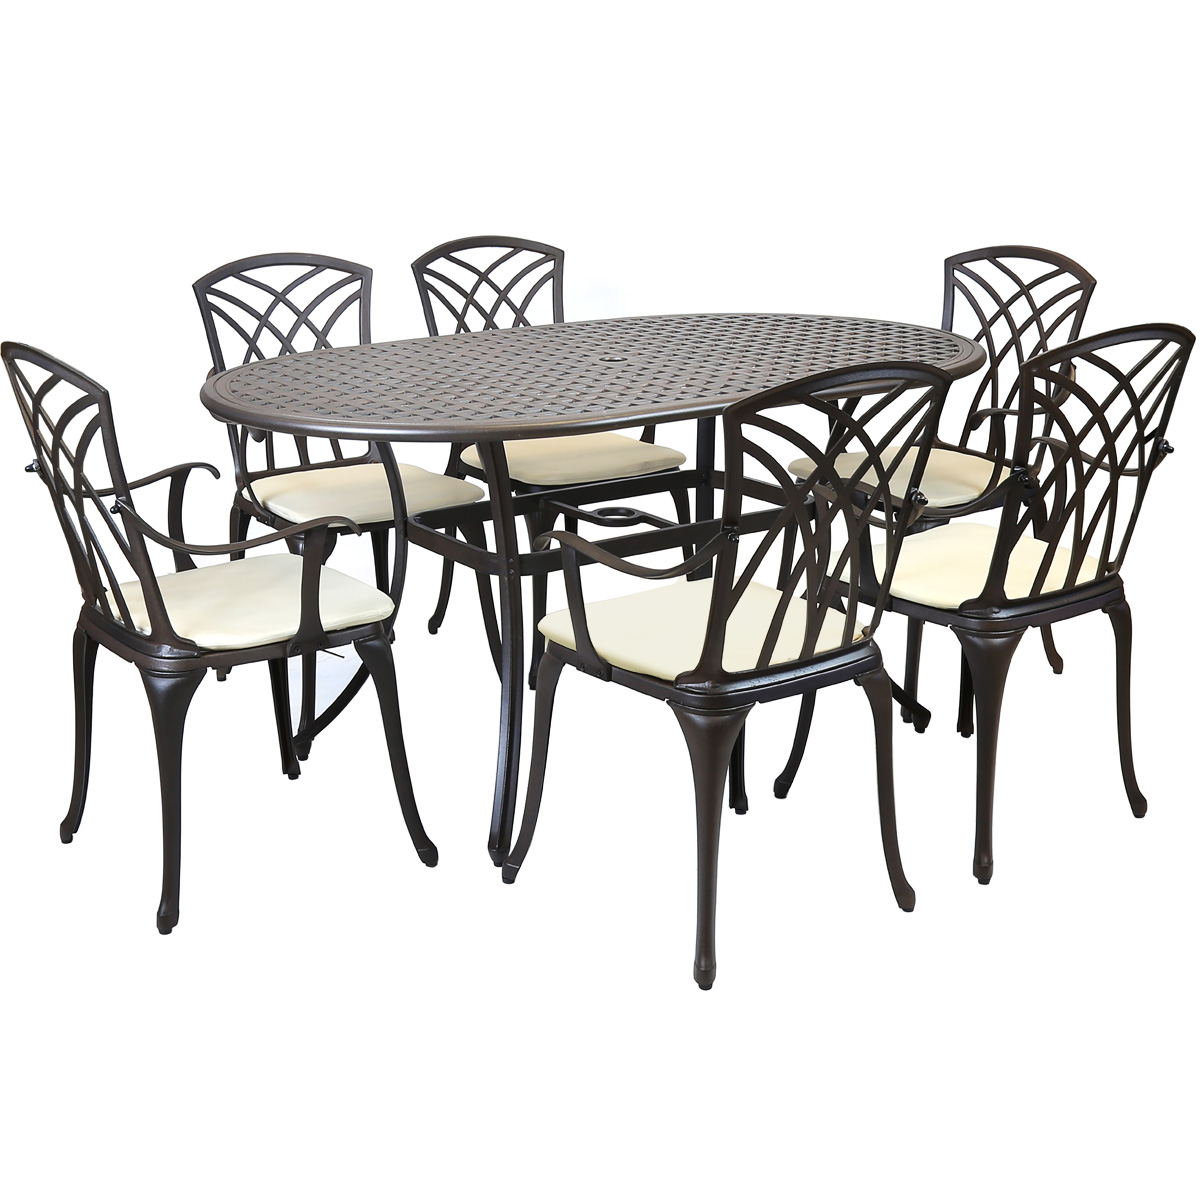 Metal Cast Aluminium 7 Piece Garden Furniture Table Patio Set With Cushions Ebay